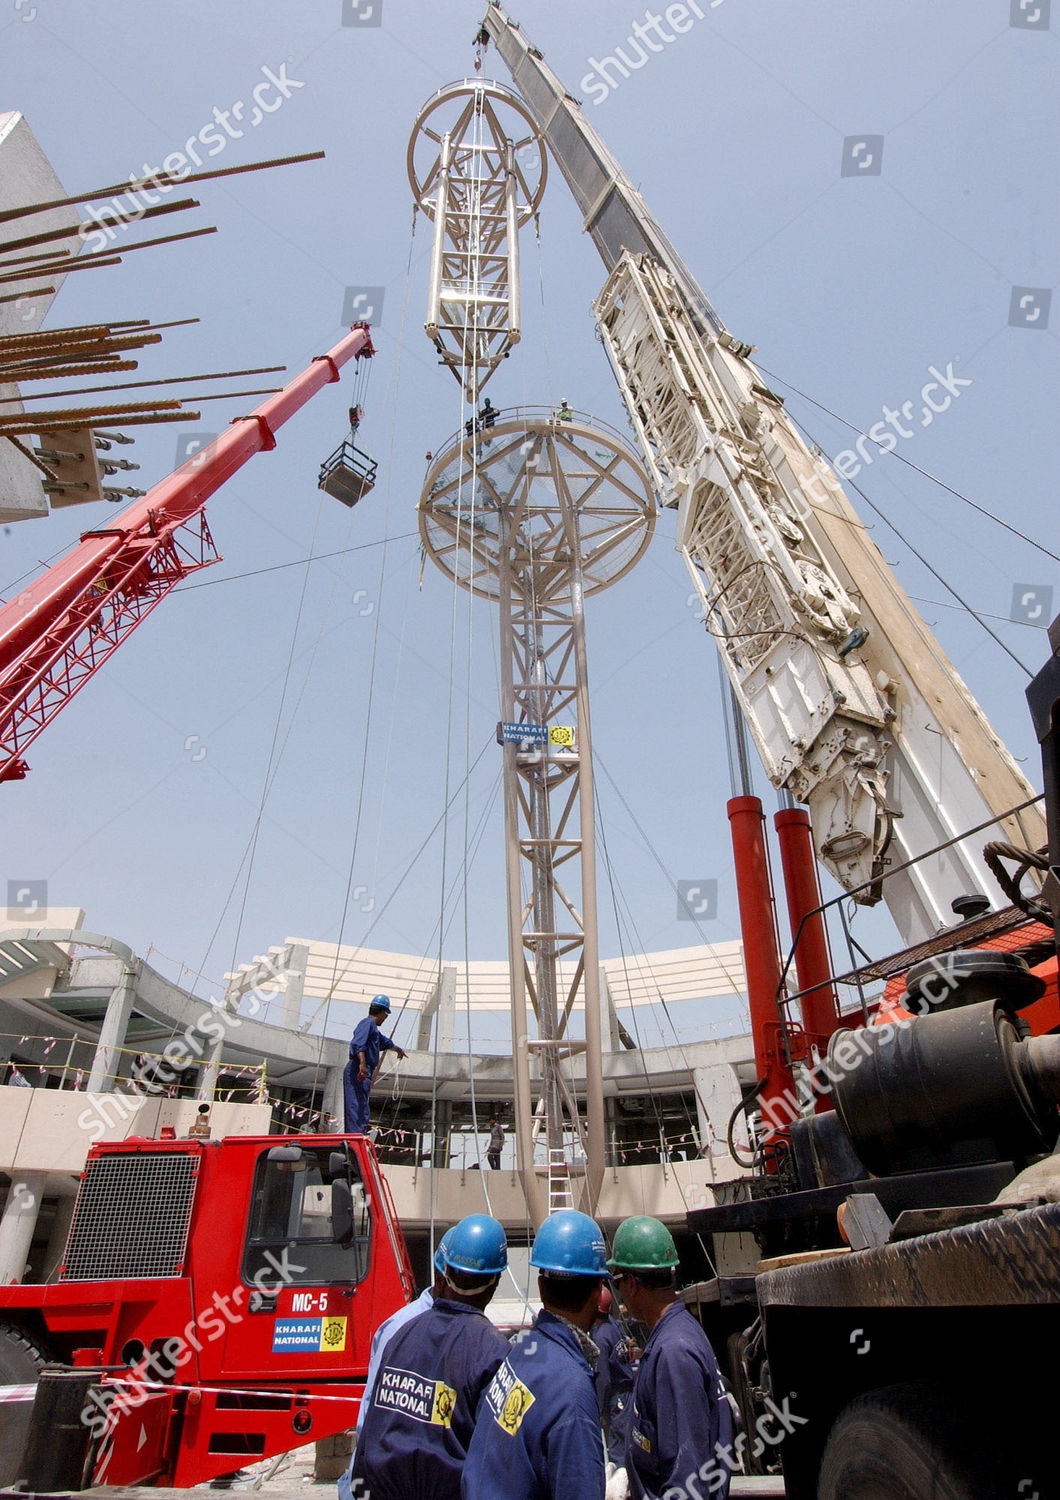 RICHESS Construction workers erect tower on seaside